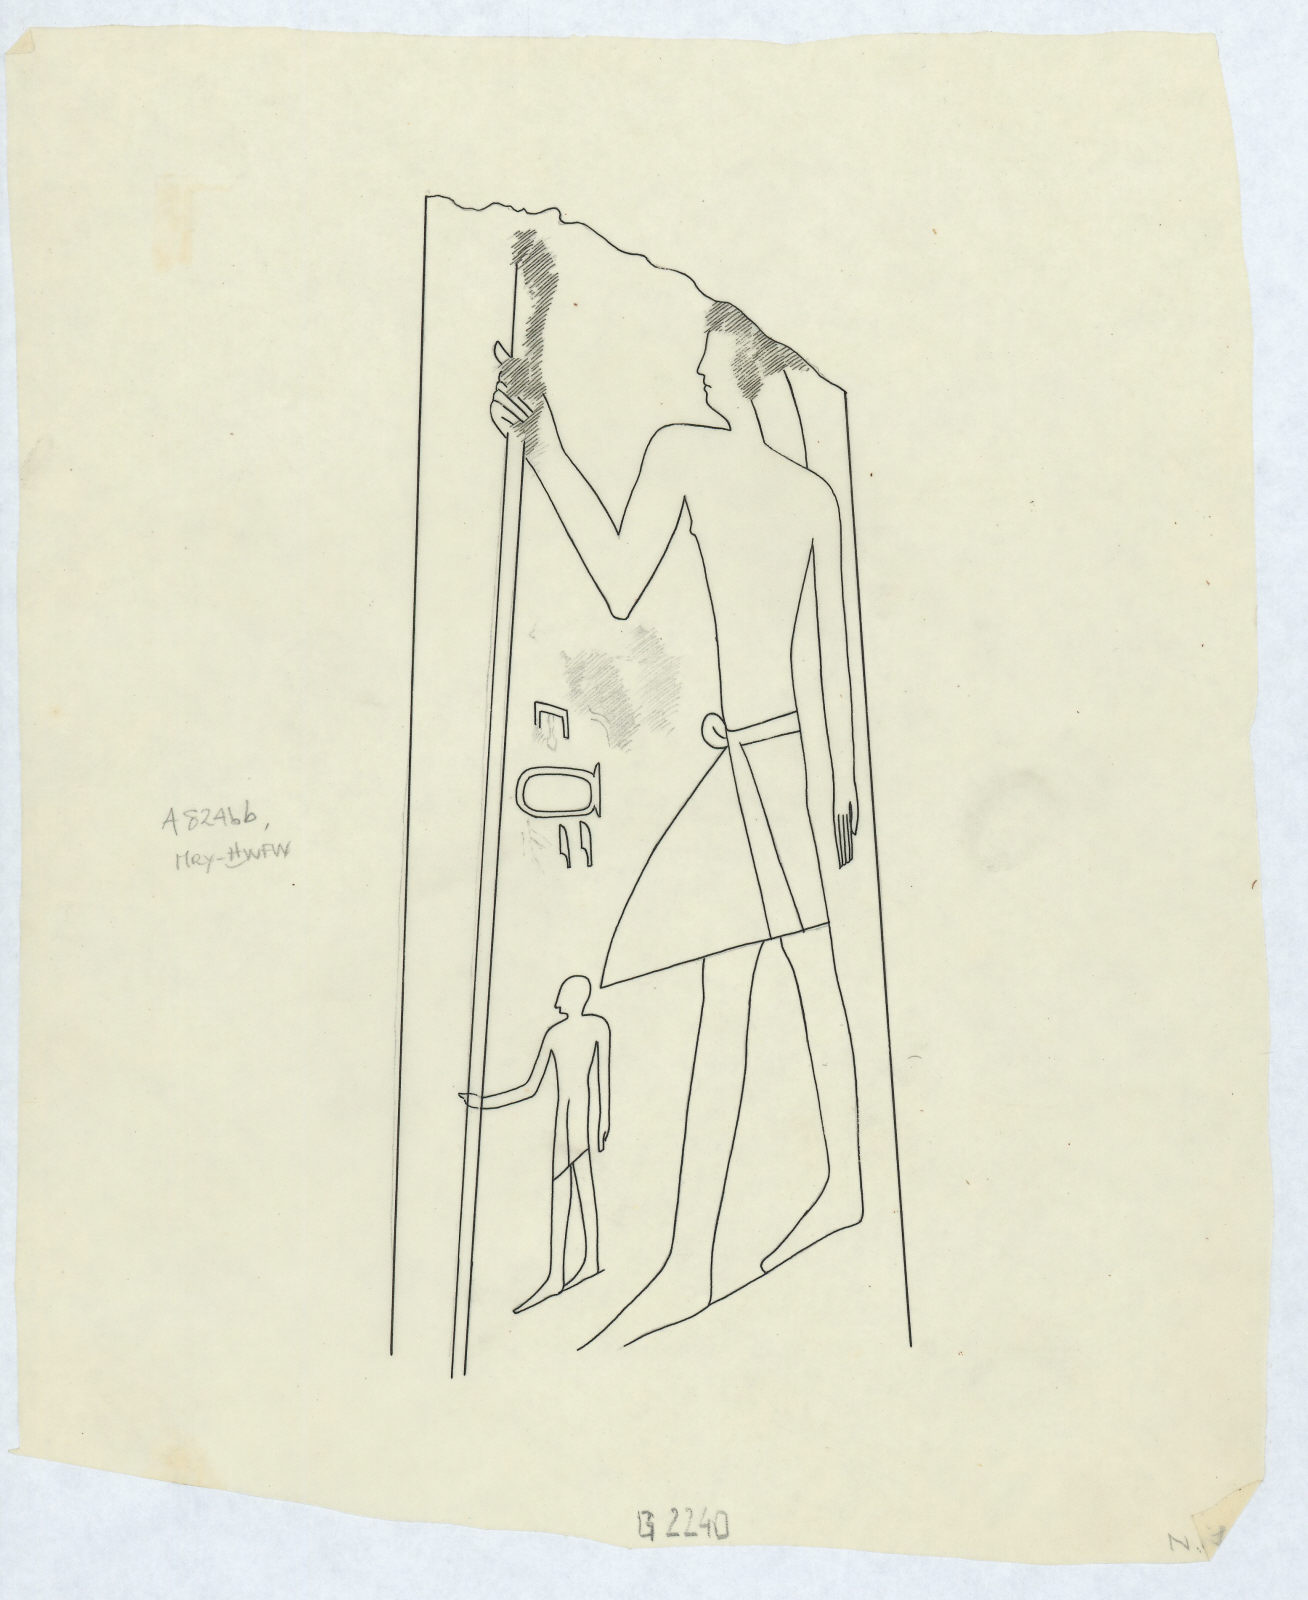 Drawings: G 2240: relief from S jamb